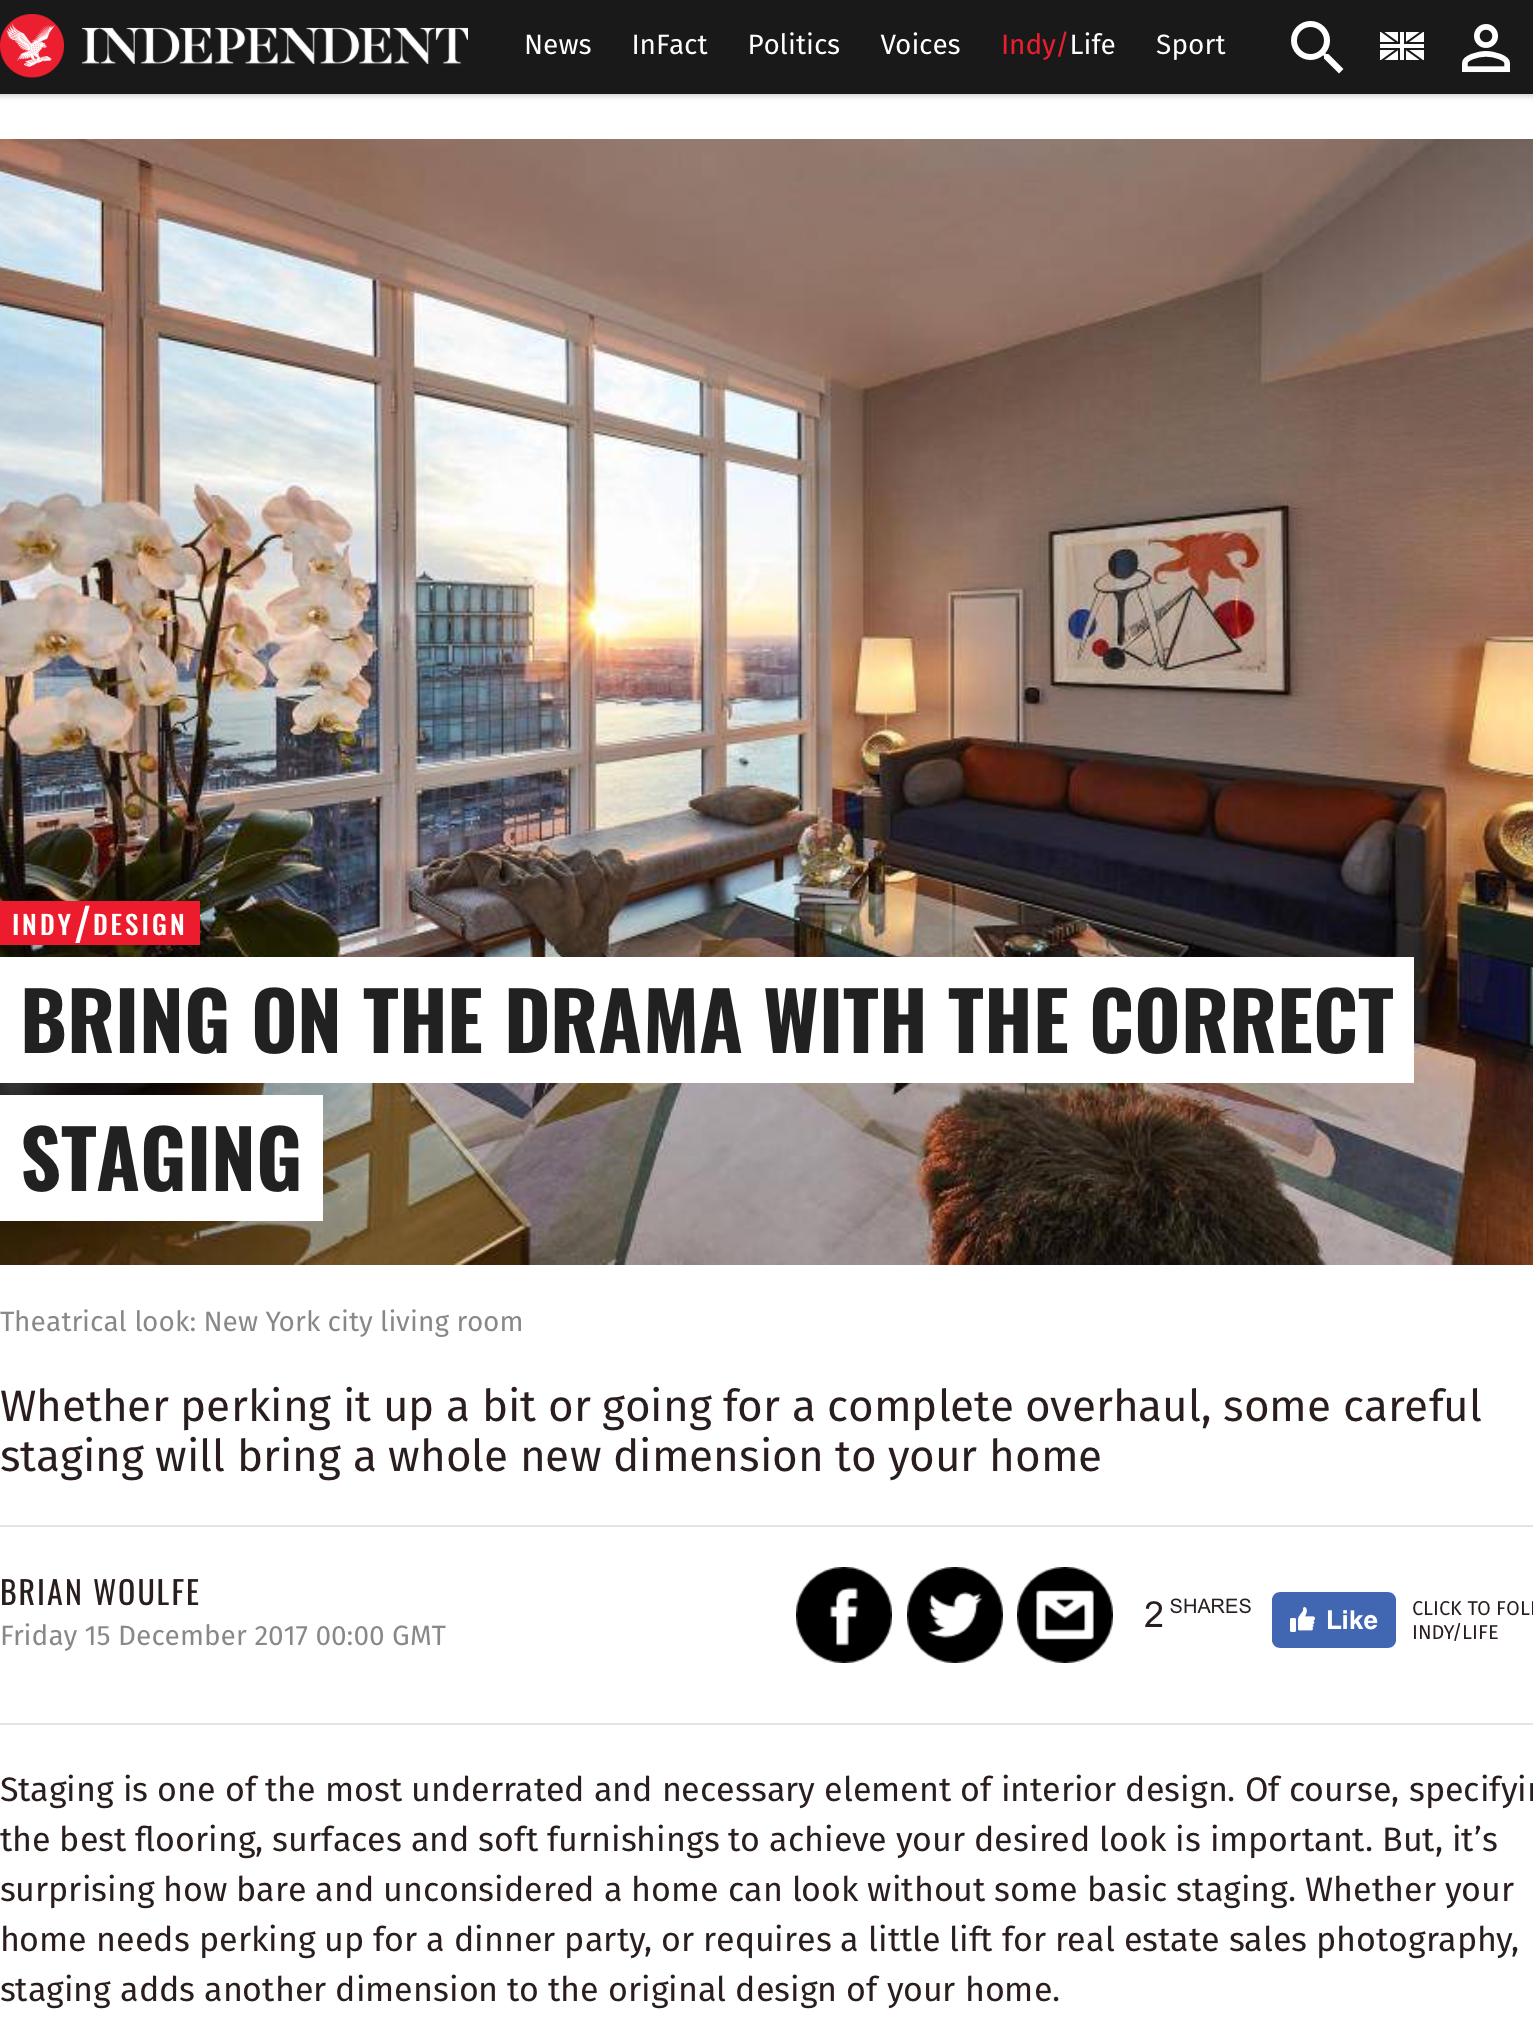 Designed by Woulfe, Bring on the drama with the correct staging. The Independent, Brian Woulfe